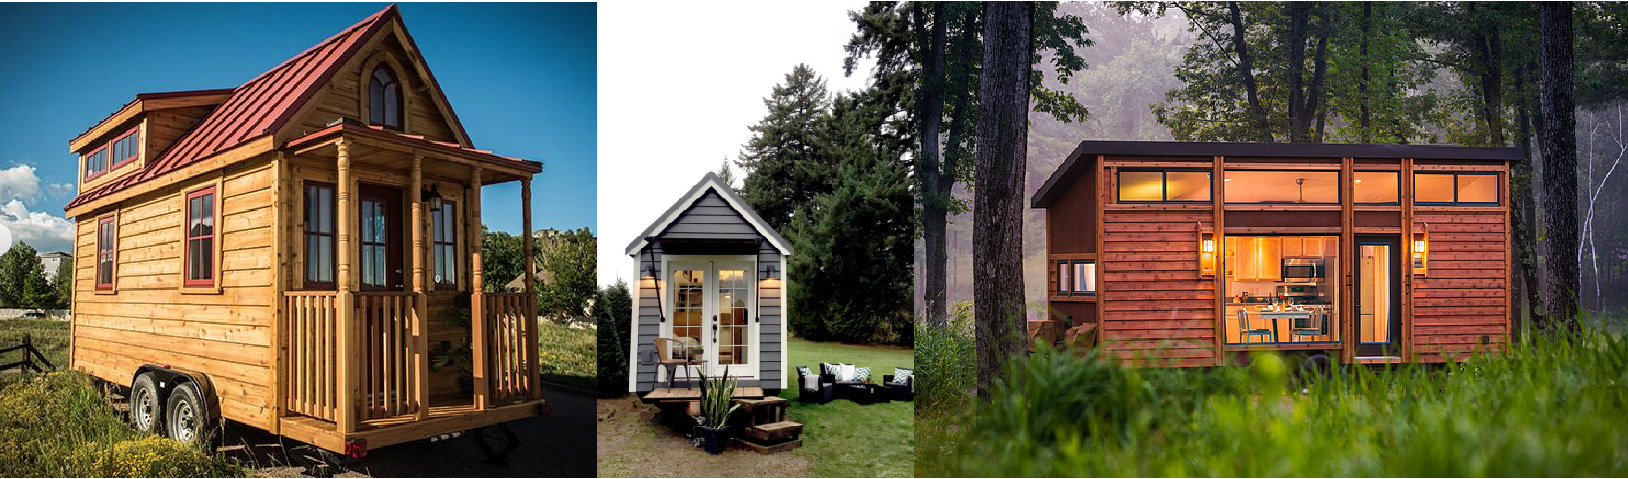 """From Left to Right: Tumbleweed House """"Elmy"""", Tiny Heirloom """"Victorian in Indianapolis"""", and Escape Traveler """"Traveler""""House."""